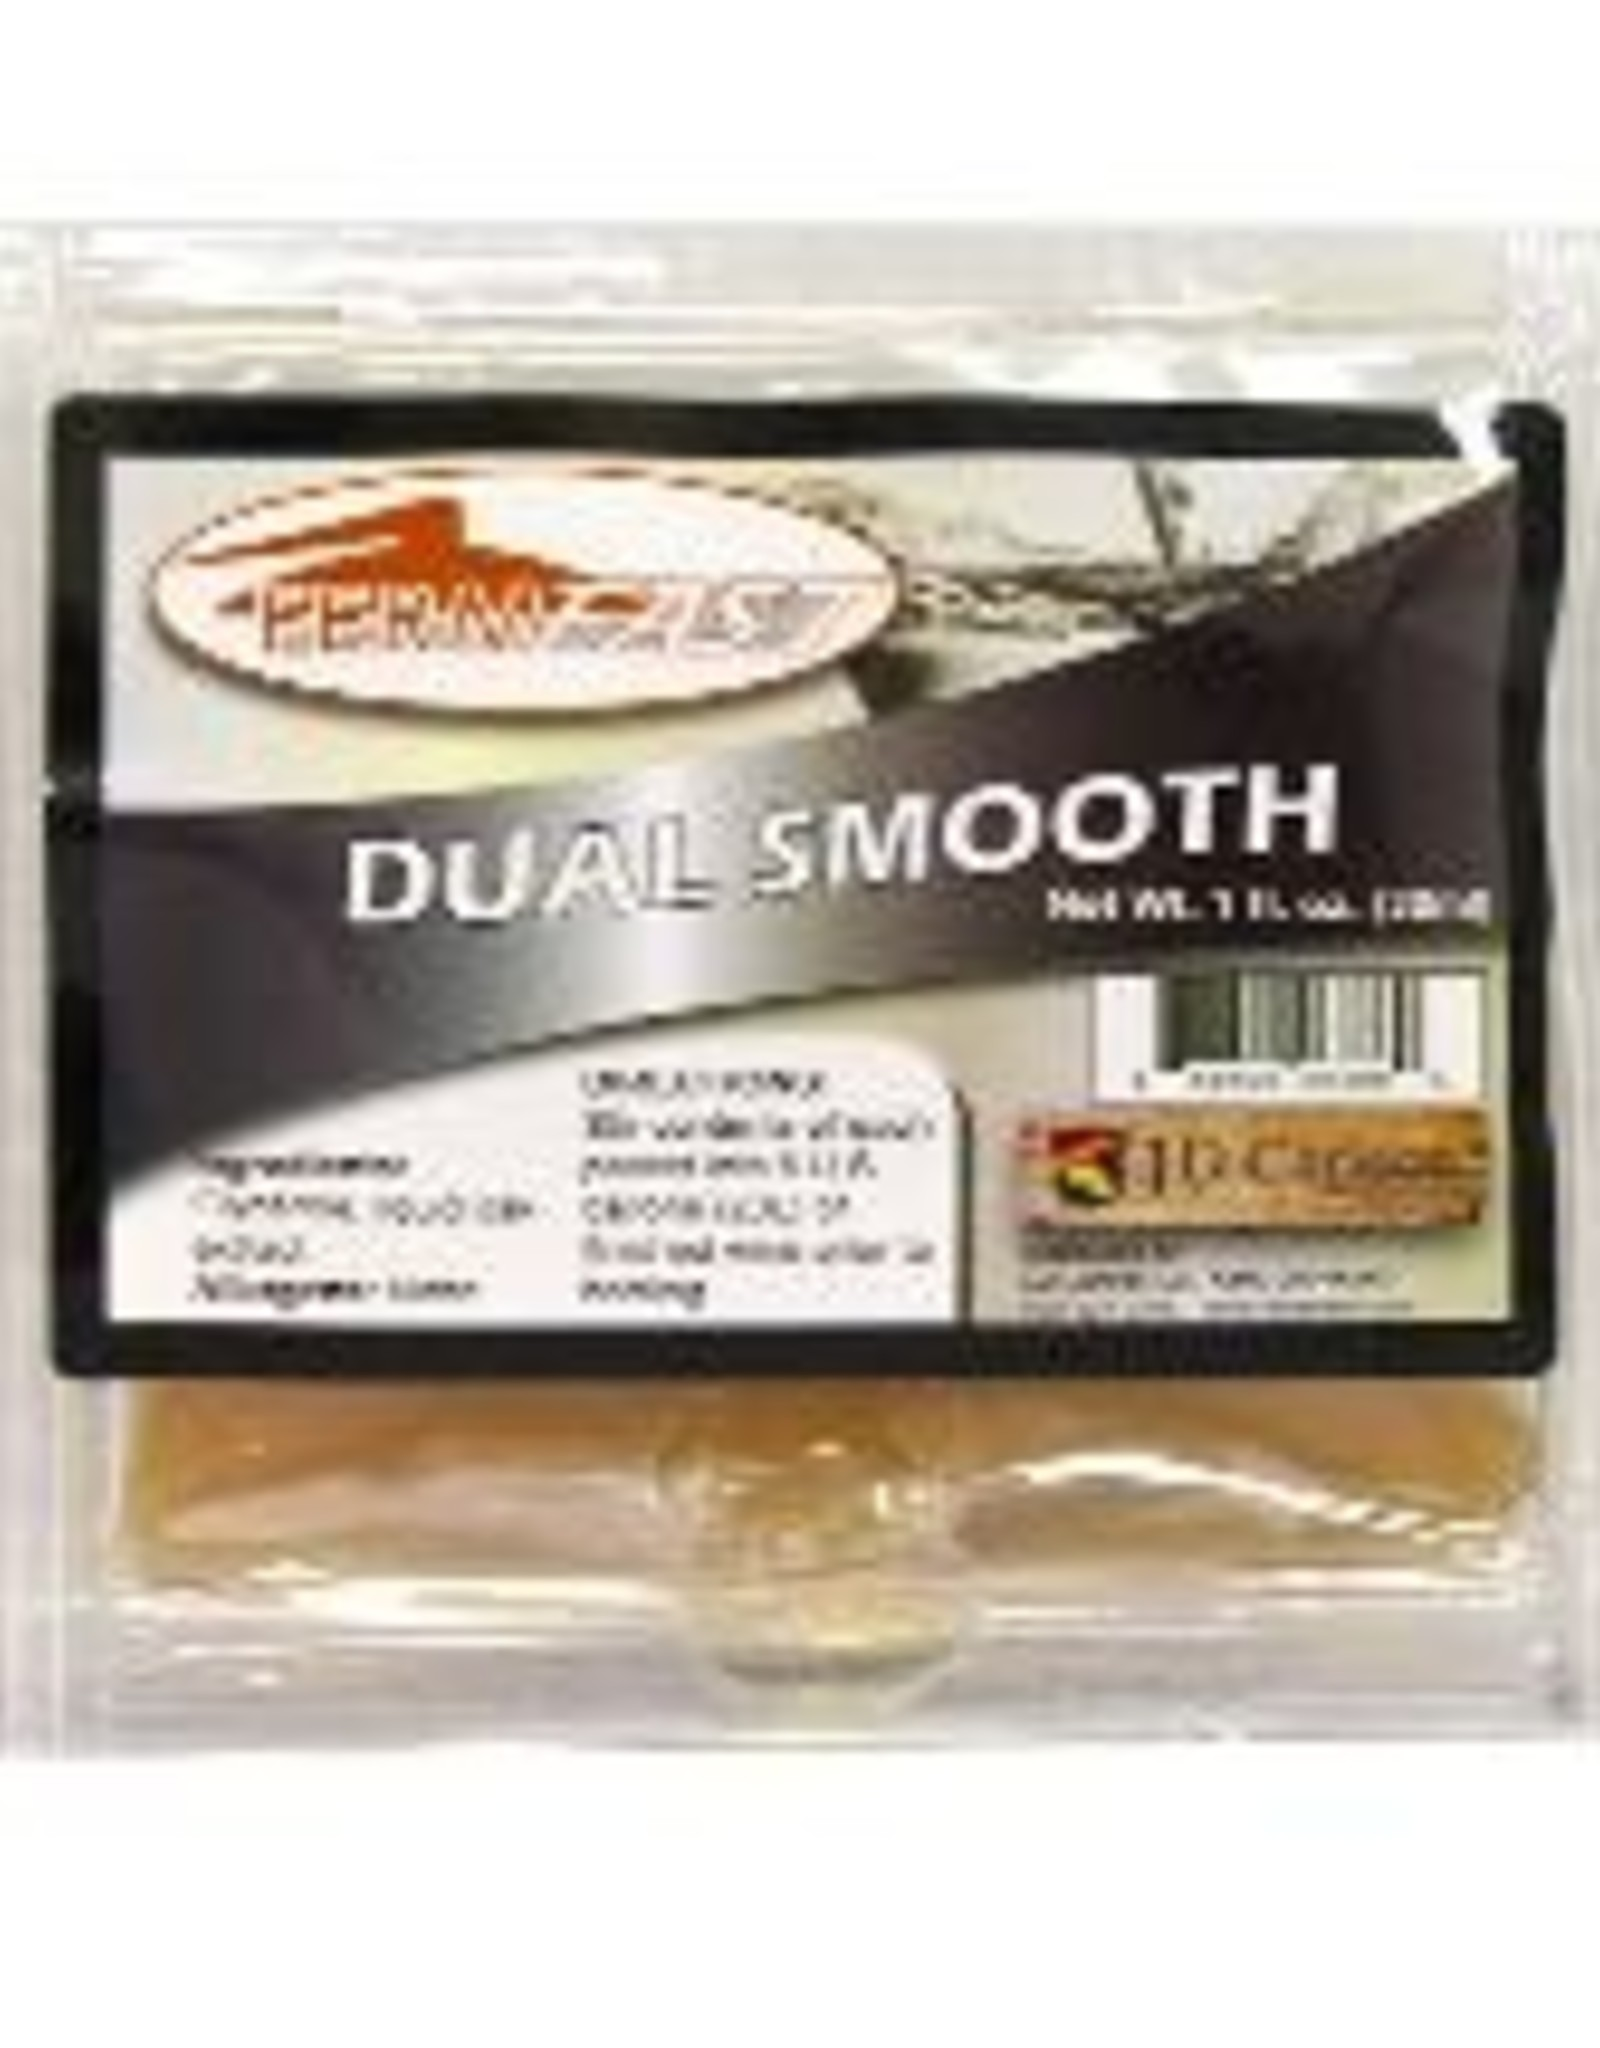 FERMFAST DUAL SMOOTH 1 oz